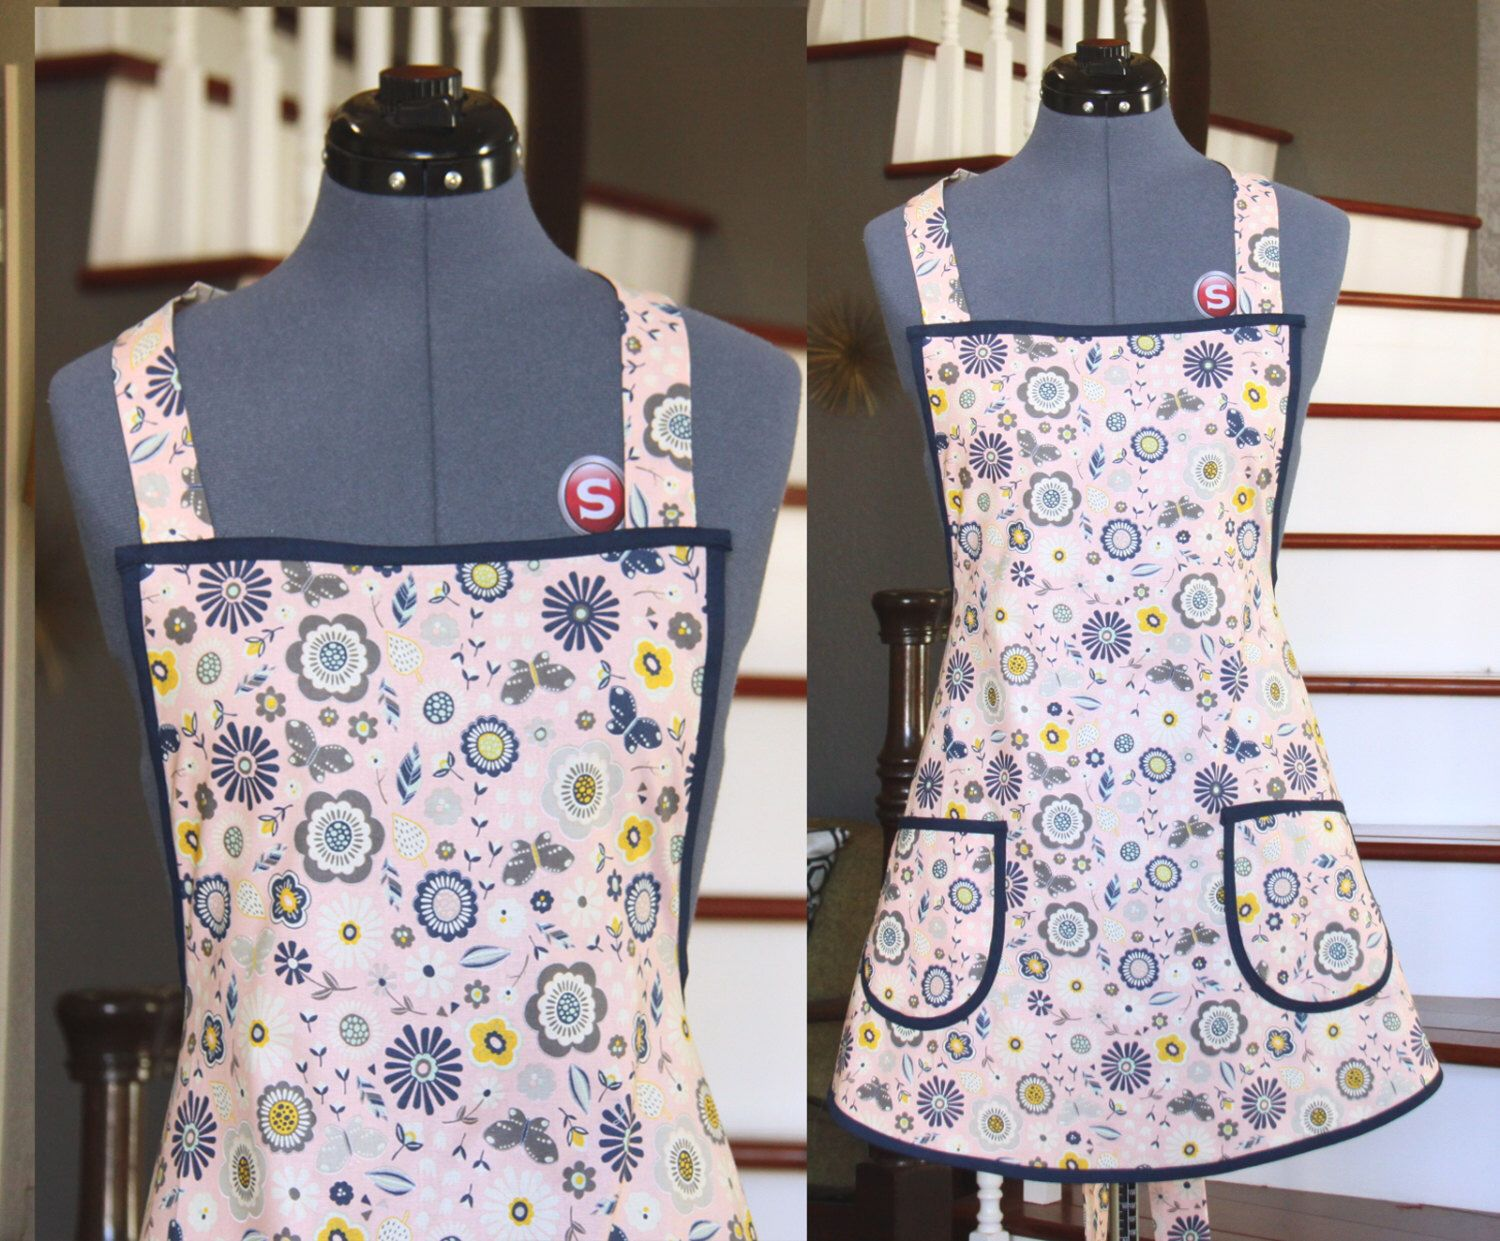 White apron etsy - Handmade Aprons Pink Aprons For Women Flowers Butterflies Pink Navy Gray White Apron Aprons For Sale Kitchen Apron Hortencia Apron